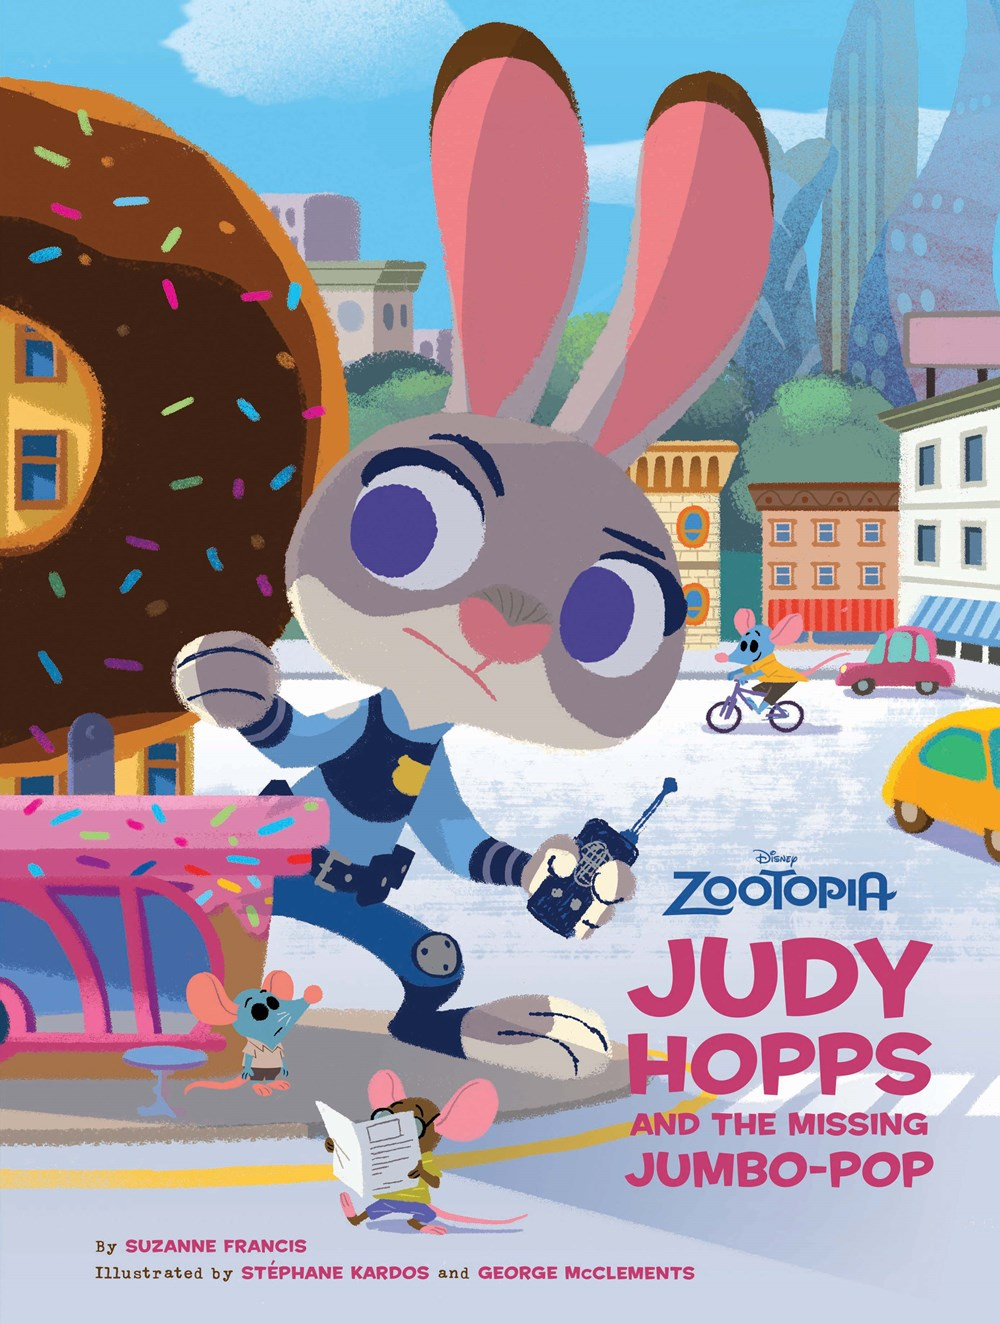 Zootopia: Judy Hopps and the Missing Jumbo-Pop